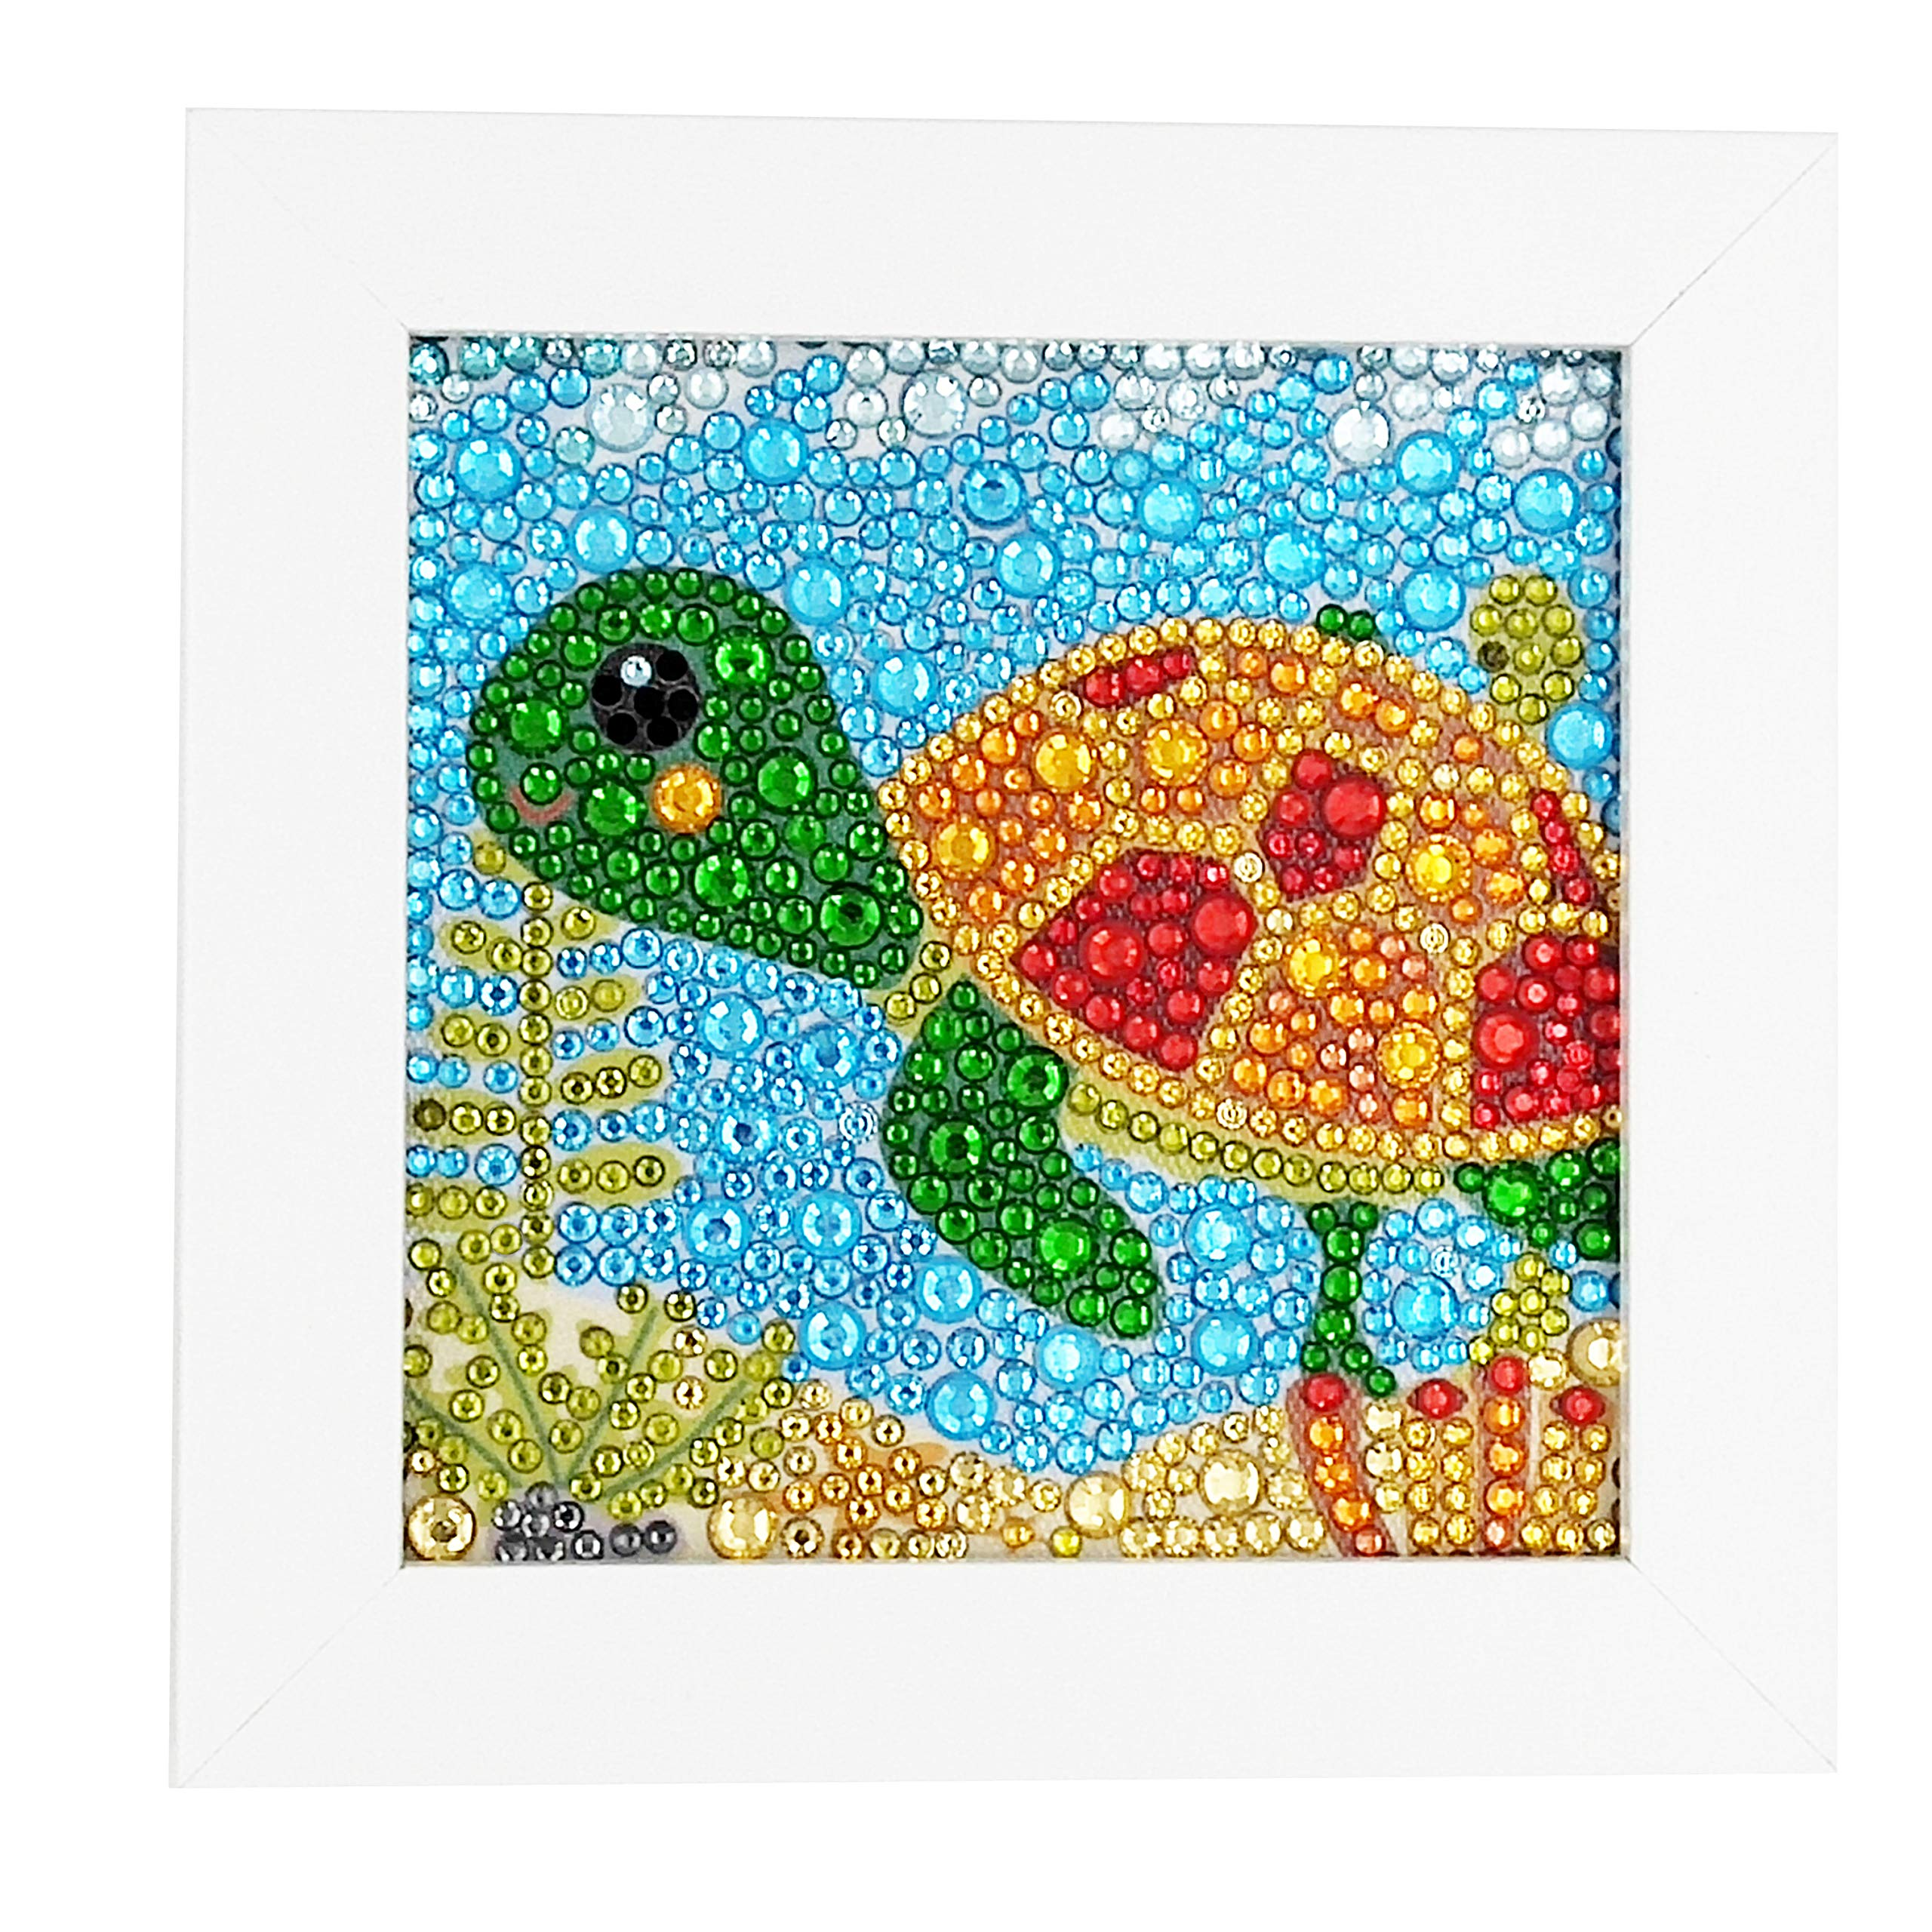 ParNarZar Small and Easy DIY 5d Diamond Painting Kits Mosaic Making with White Frame for Kids - Little Turtle 6X6inches by ParNarZar